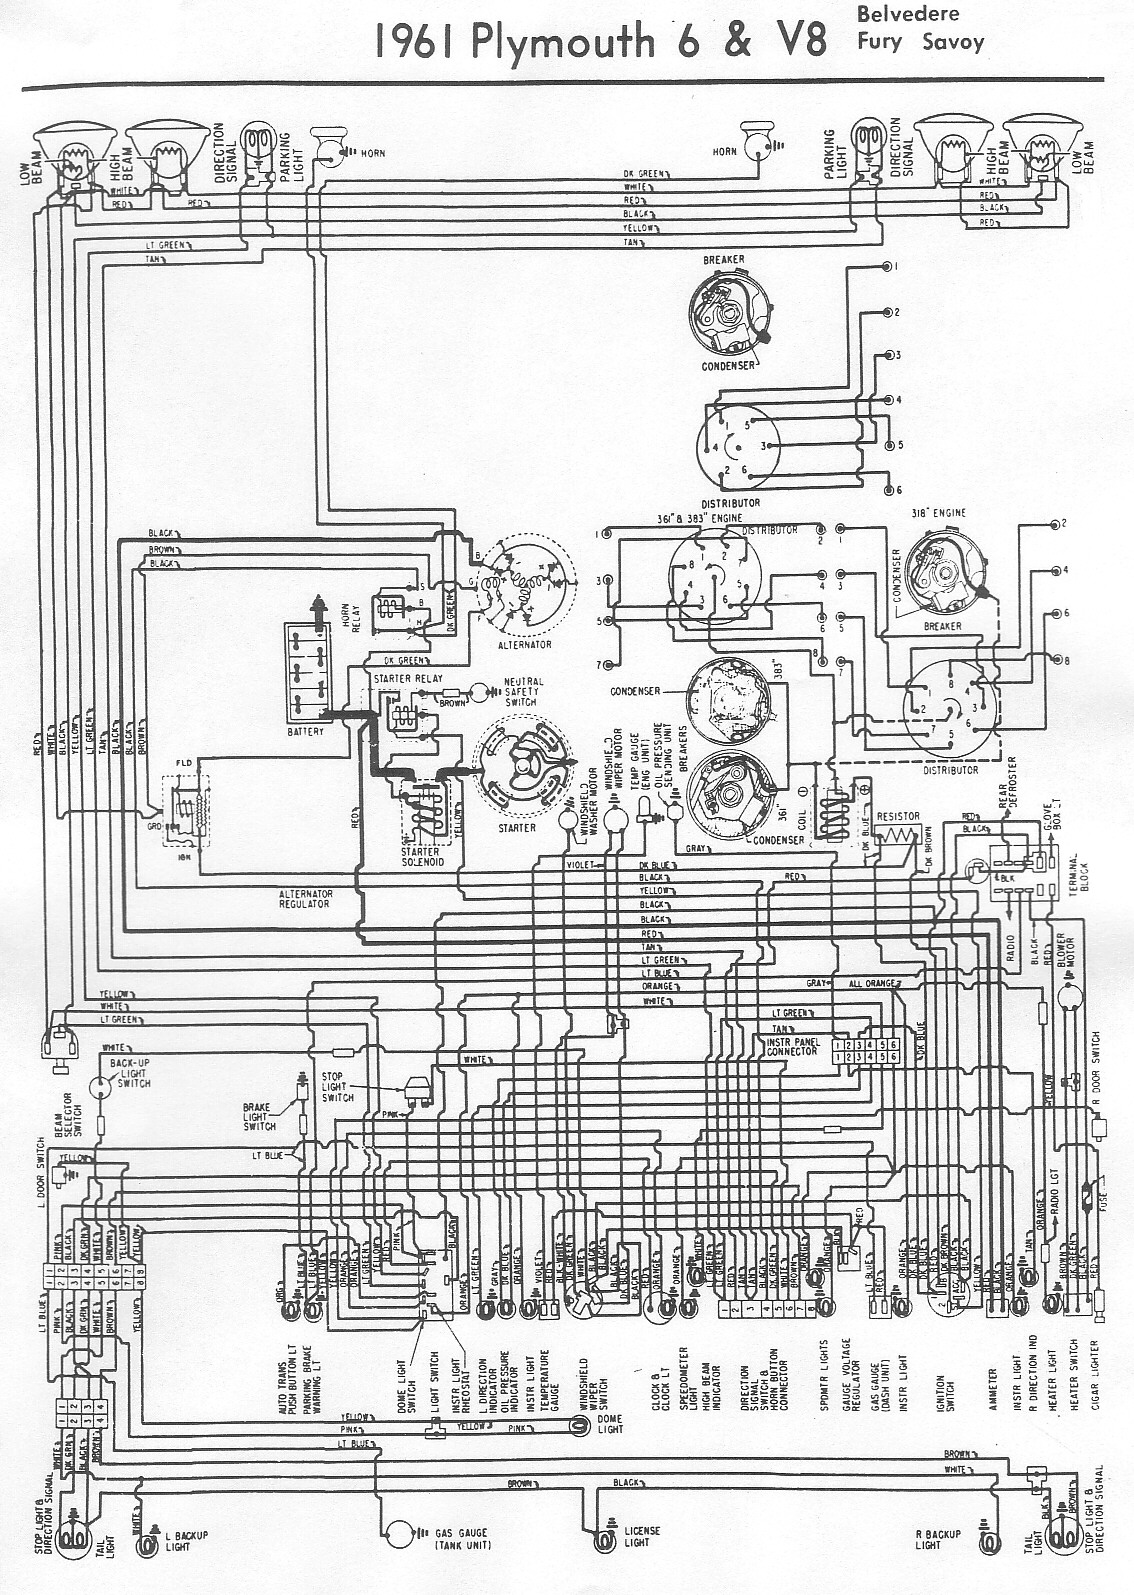 medium resolution of 1969 plymouth fury wiring diagram electrical work wiring diagram u2022 1939 plymouth positive ground wiring